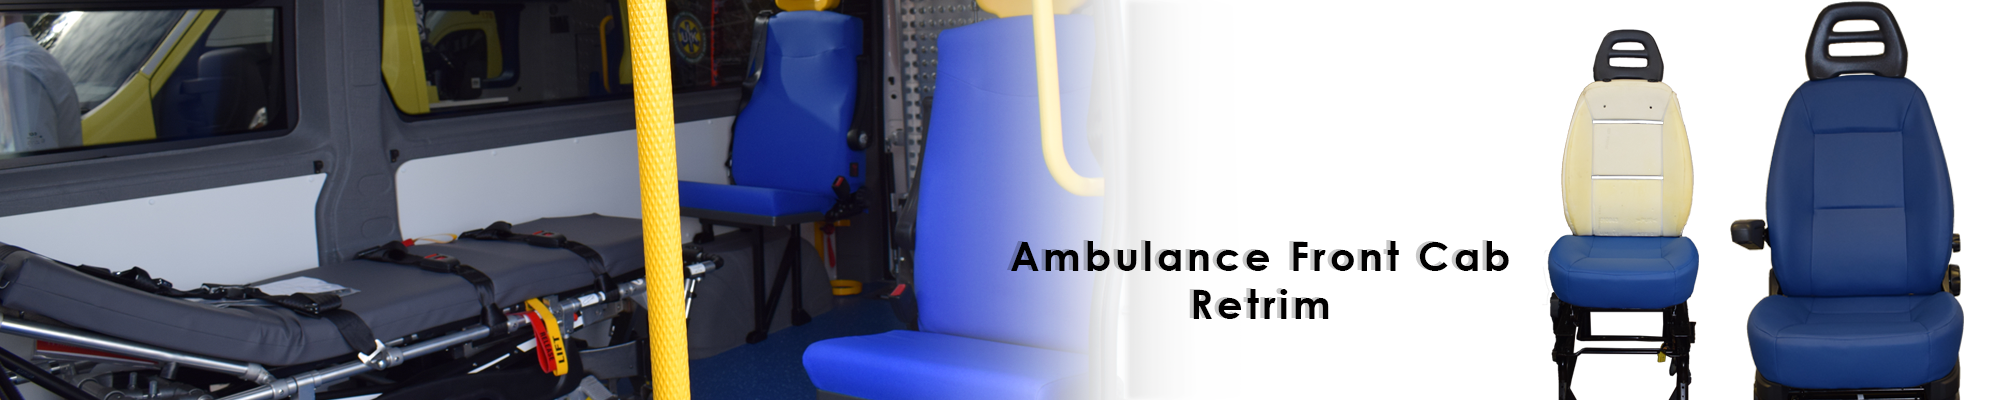 Ambulance Retrim Banner